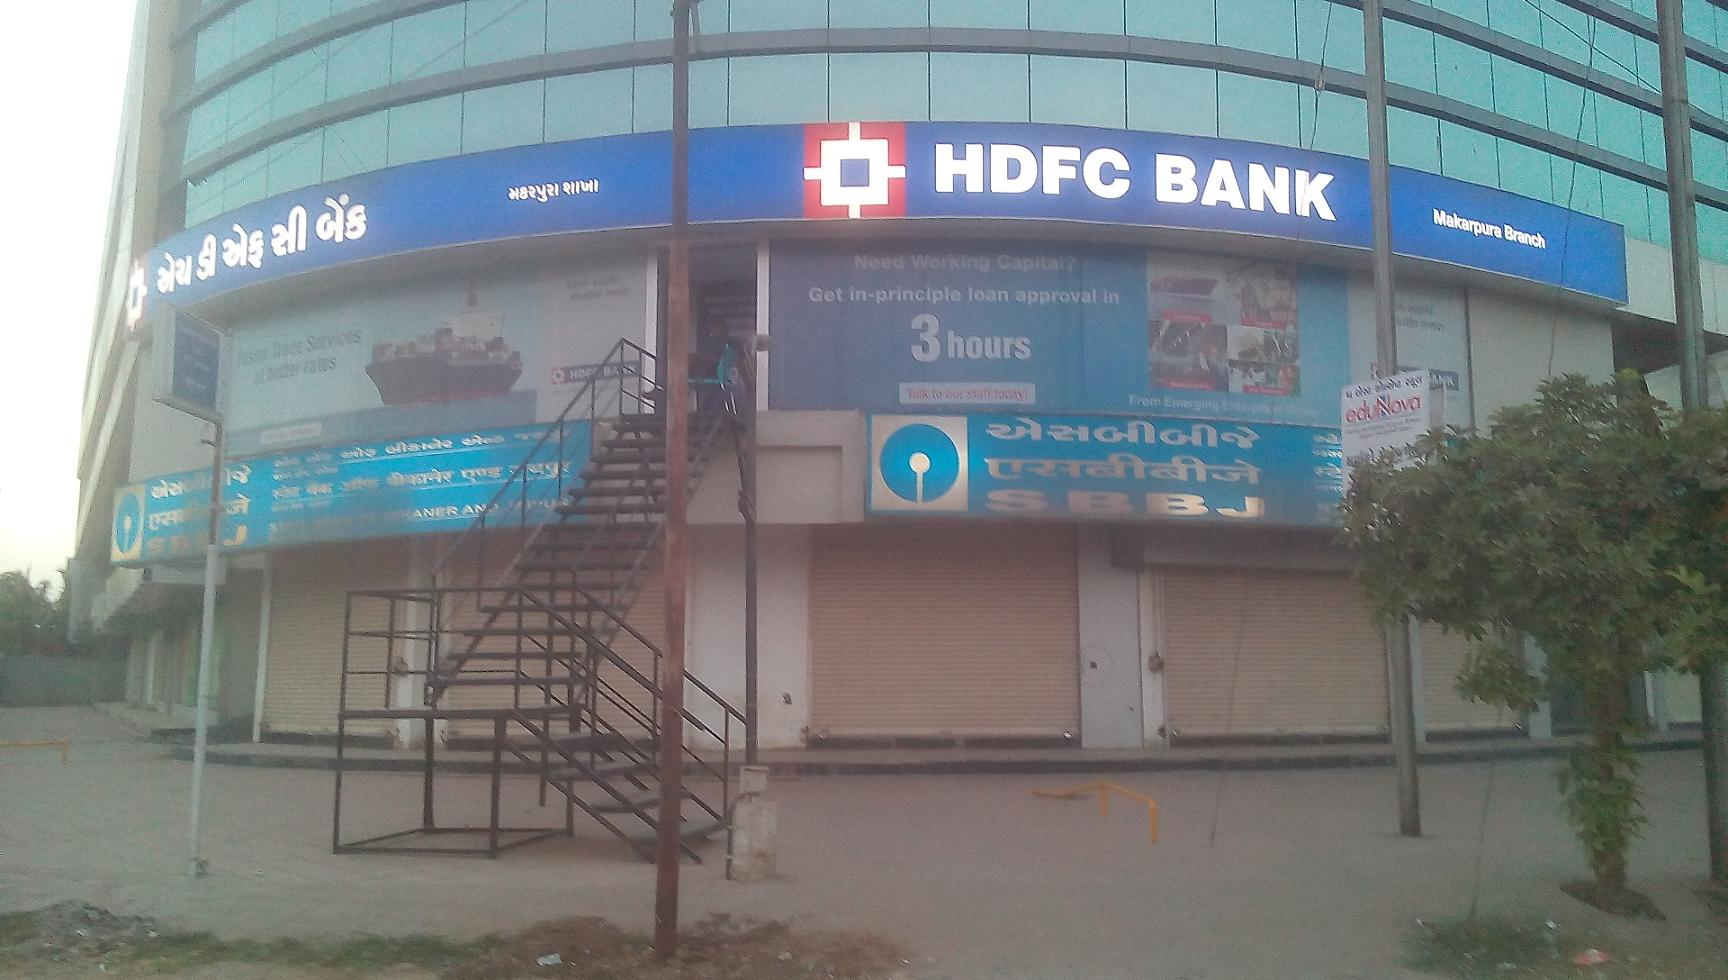 HDFC Bank Vadsar Branch do not having Ramp and Special Parking for Divayng Citizen To access this Branch and ATM Divayang Sr citizen Pregant have to climb more than 40 steps staircases in iron ladder it is difficult for normal citizen in summer